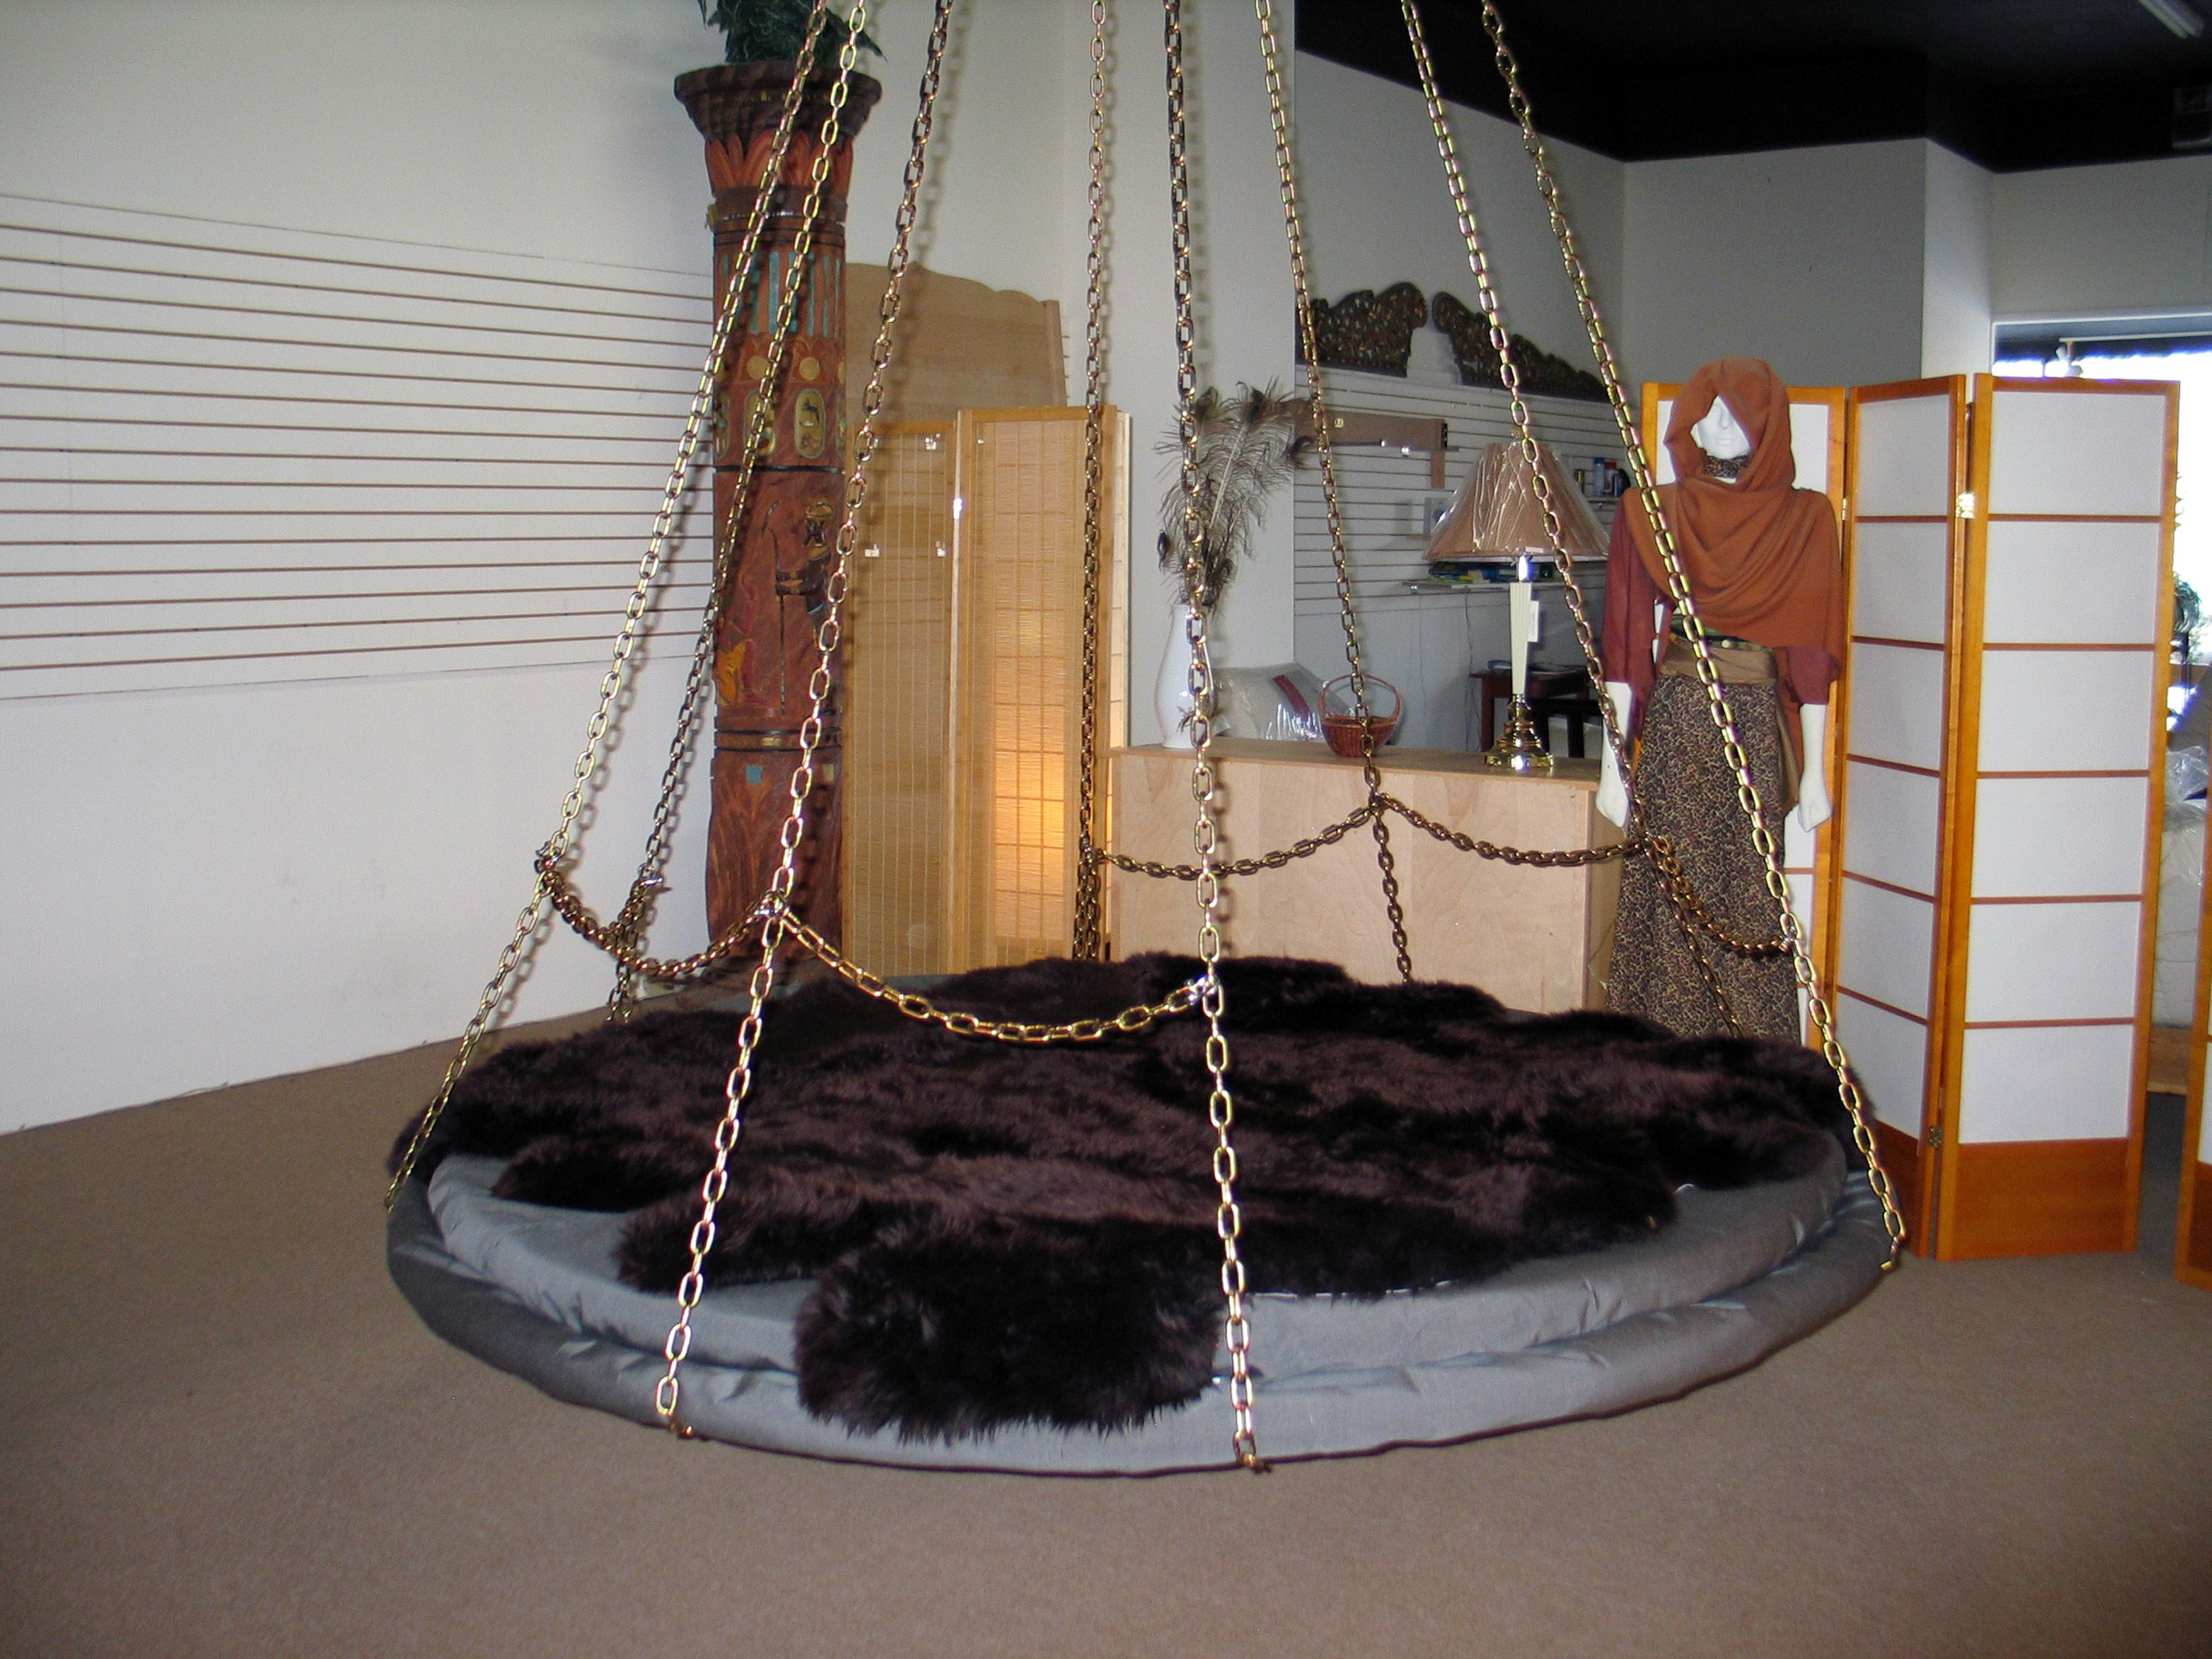 Hanging bed chains - Floating Bed With Chain Link Back Rest Can Support Pillows For Sofa Use